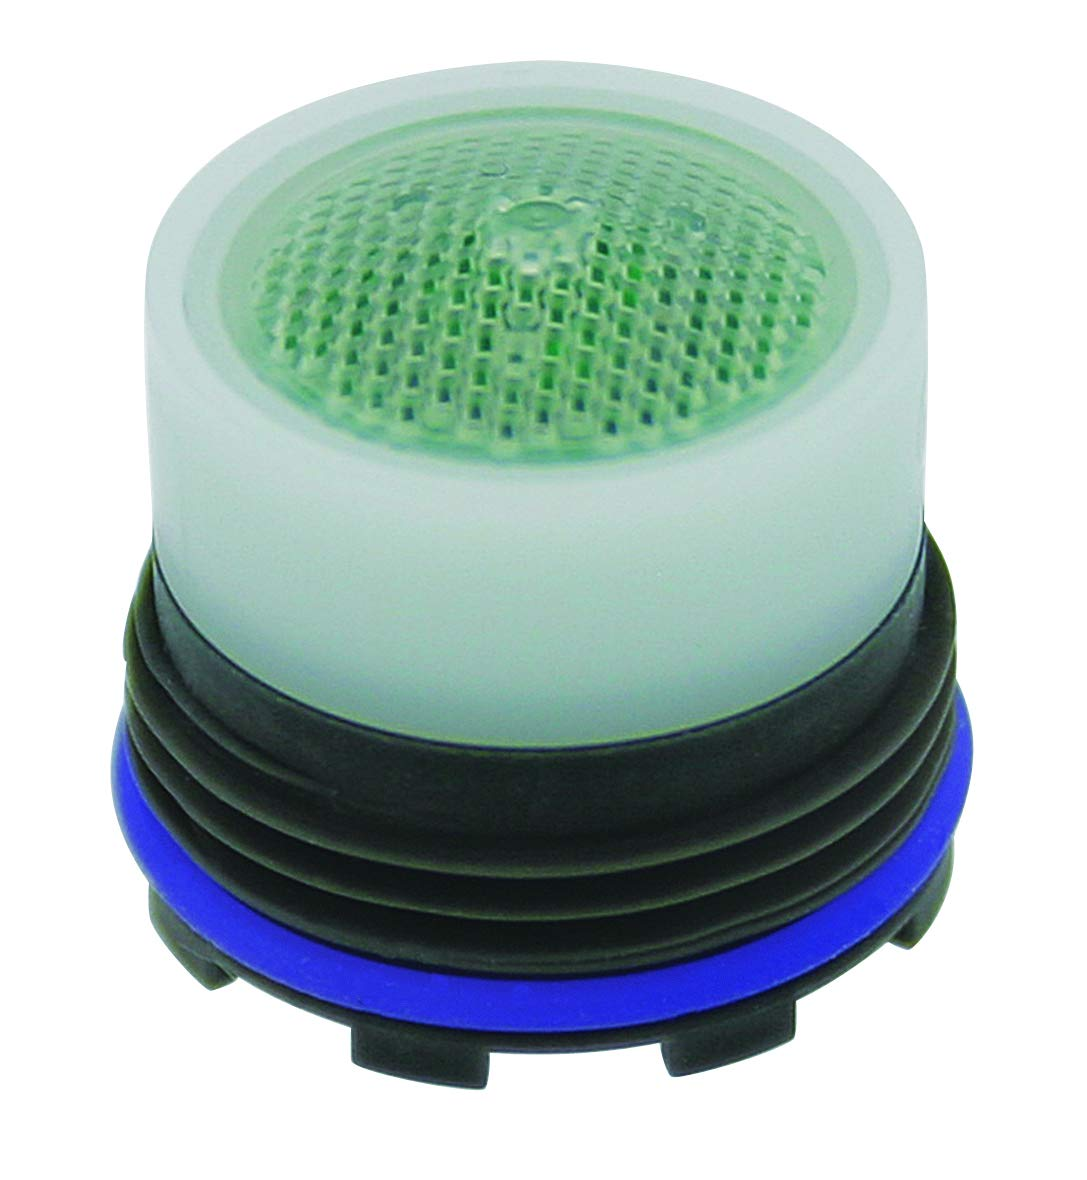 Neoperl 13 0230 2 Economy Flow PCA Cache Perlator HC Aerator, Tom Thumb Size, 1.5 GPM, Green/Clear Dome, Honeycomb Screen, Aerated Stream, M16.5 x 1 Threads, Plastic, 0.591'' Height (Pack of 6) by Neoperl